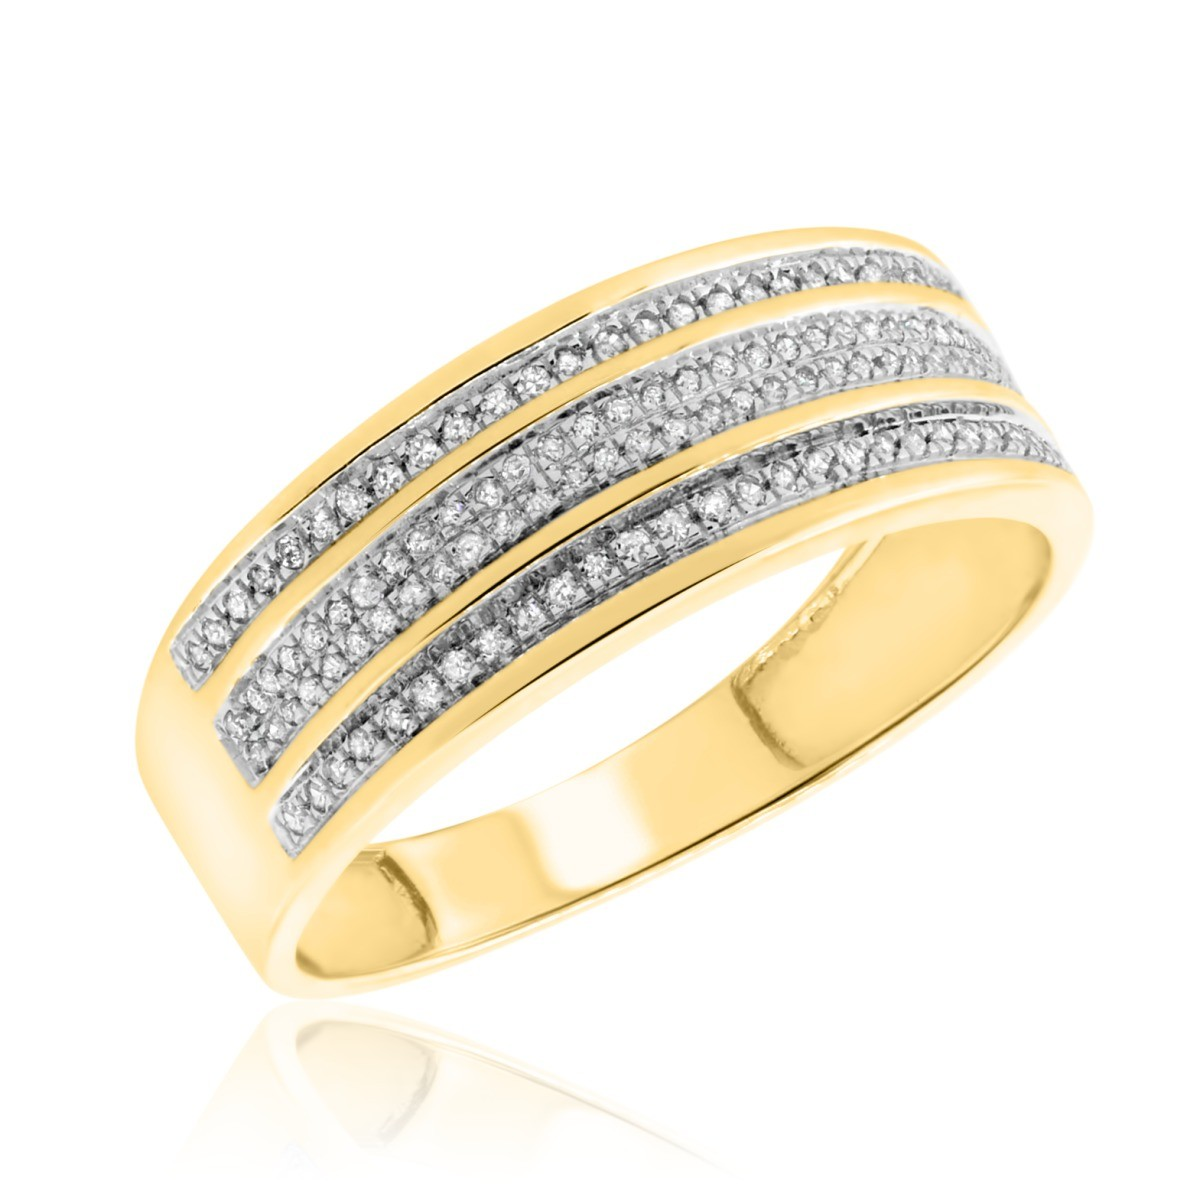 1/5 Carat T.W. Diamond Mens Wedding Band 10K Yellow Gold